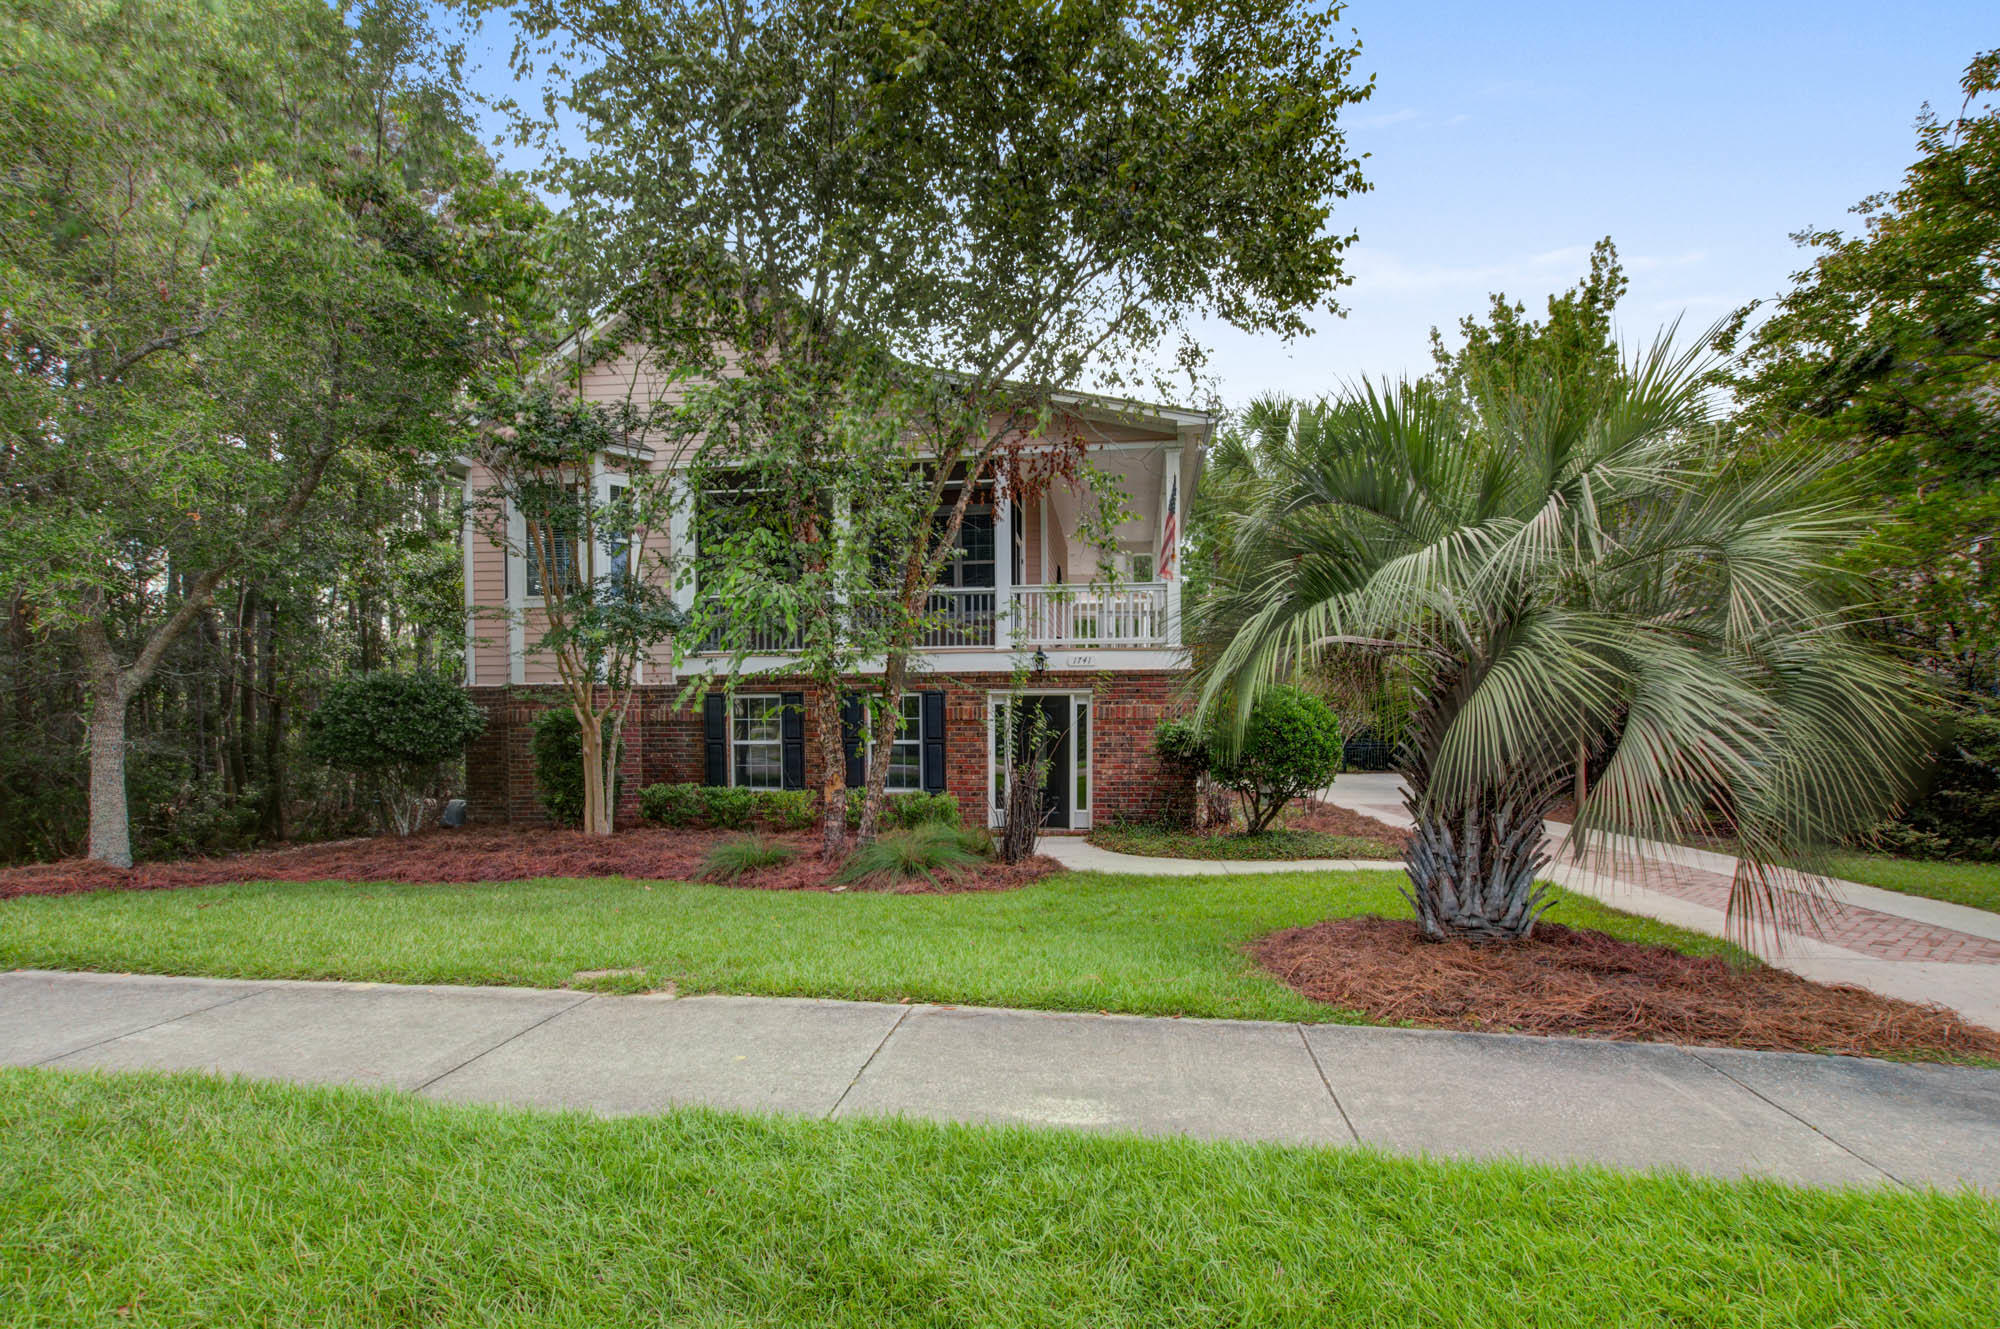 Rivertowne Country Club Homes For Sale - 1741 Rivertowne Country Club, Mount Pleasant, SC - 11